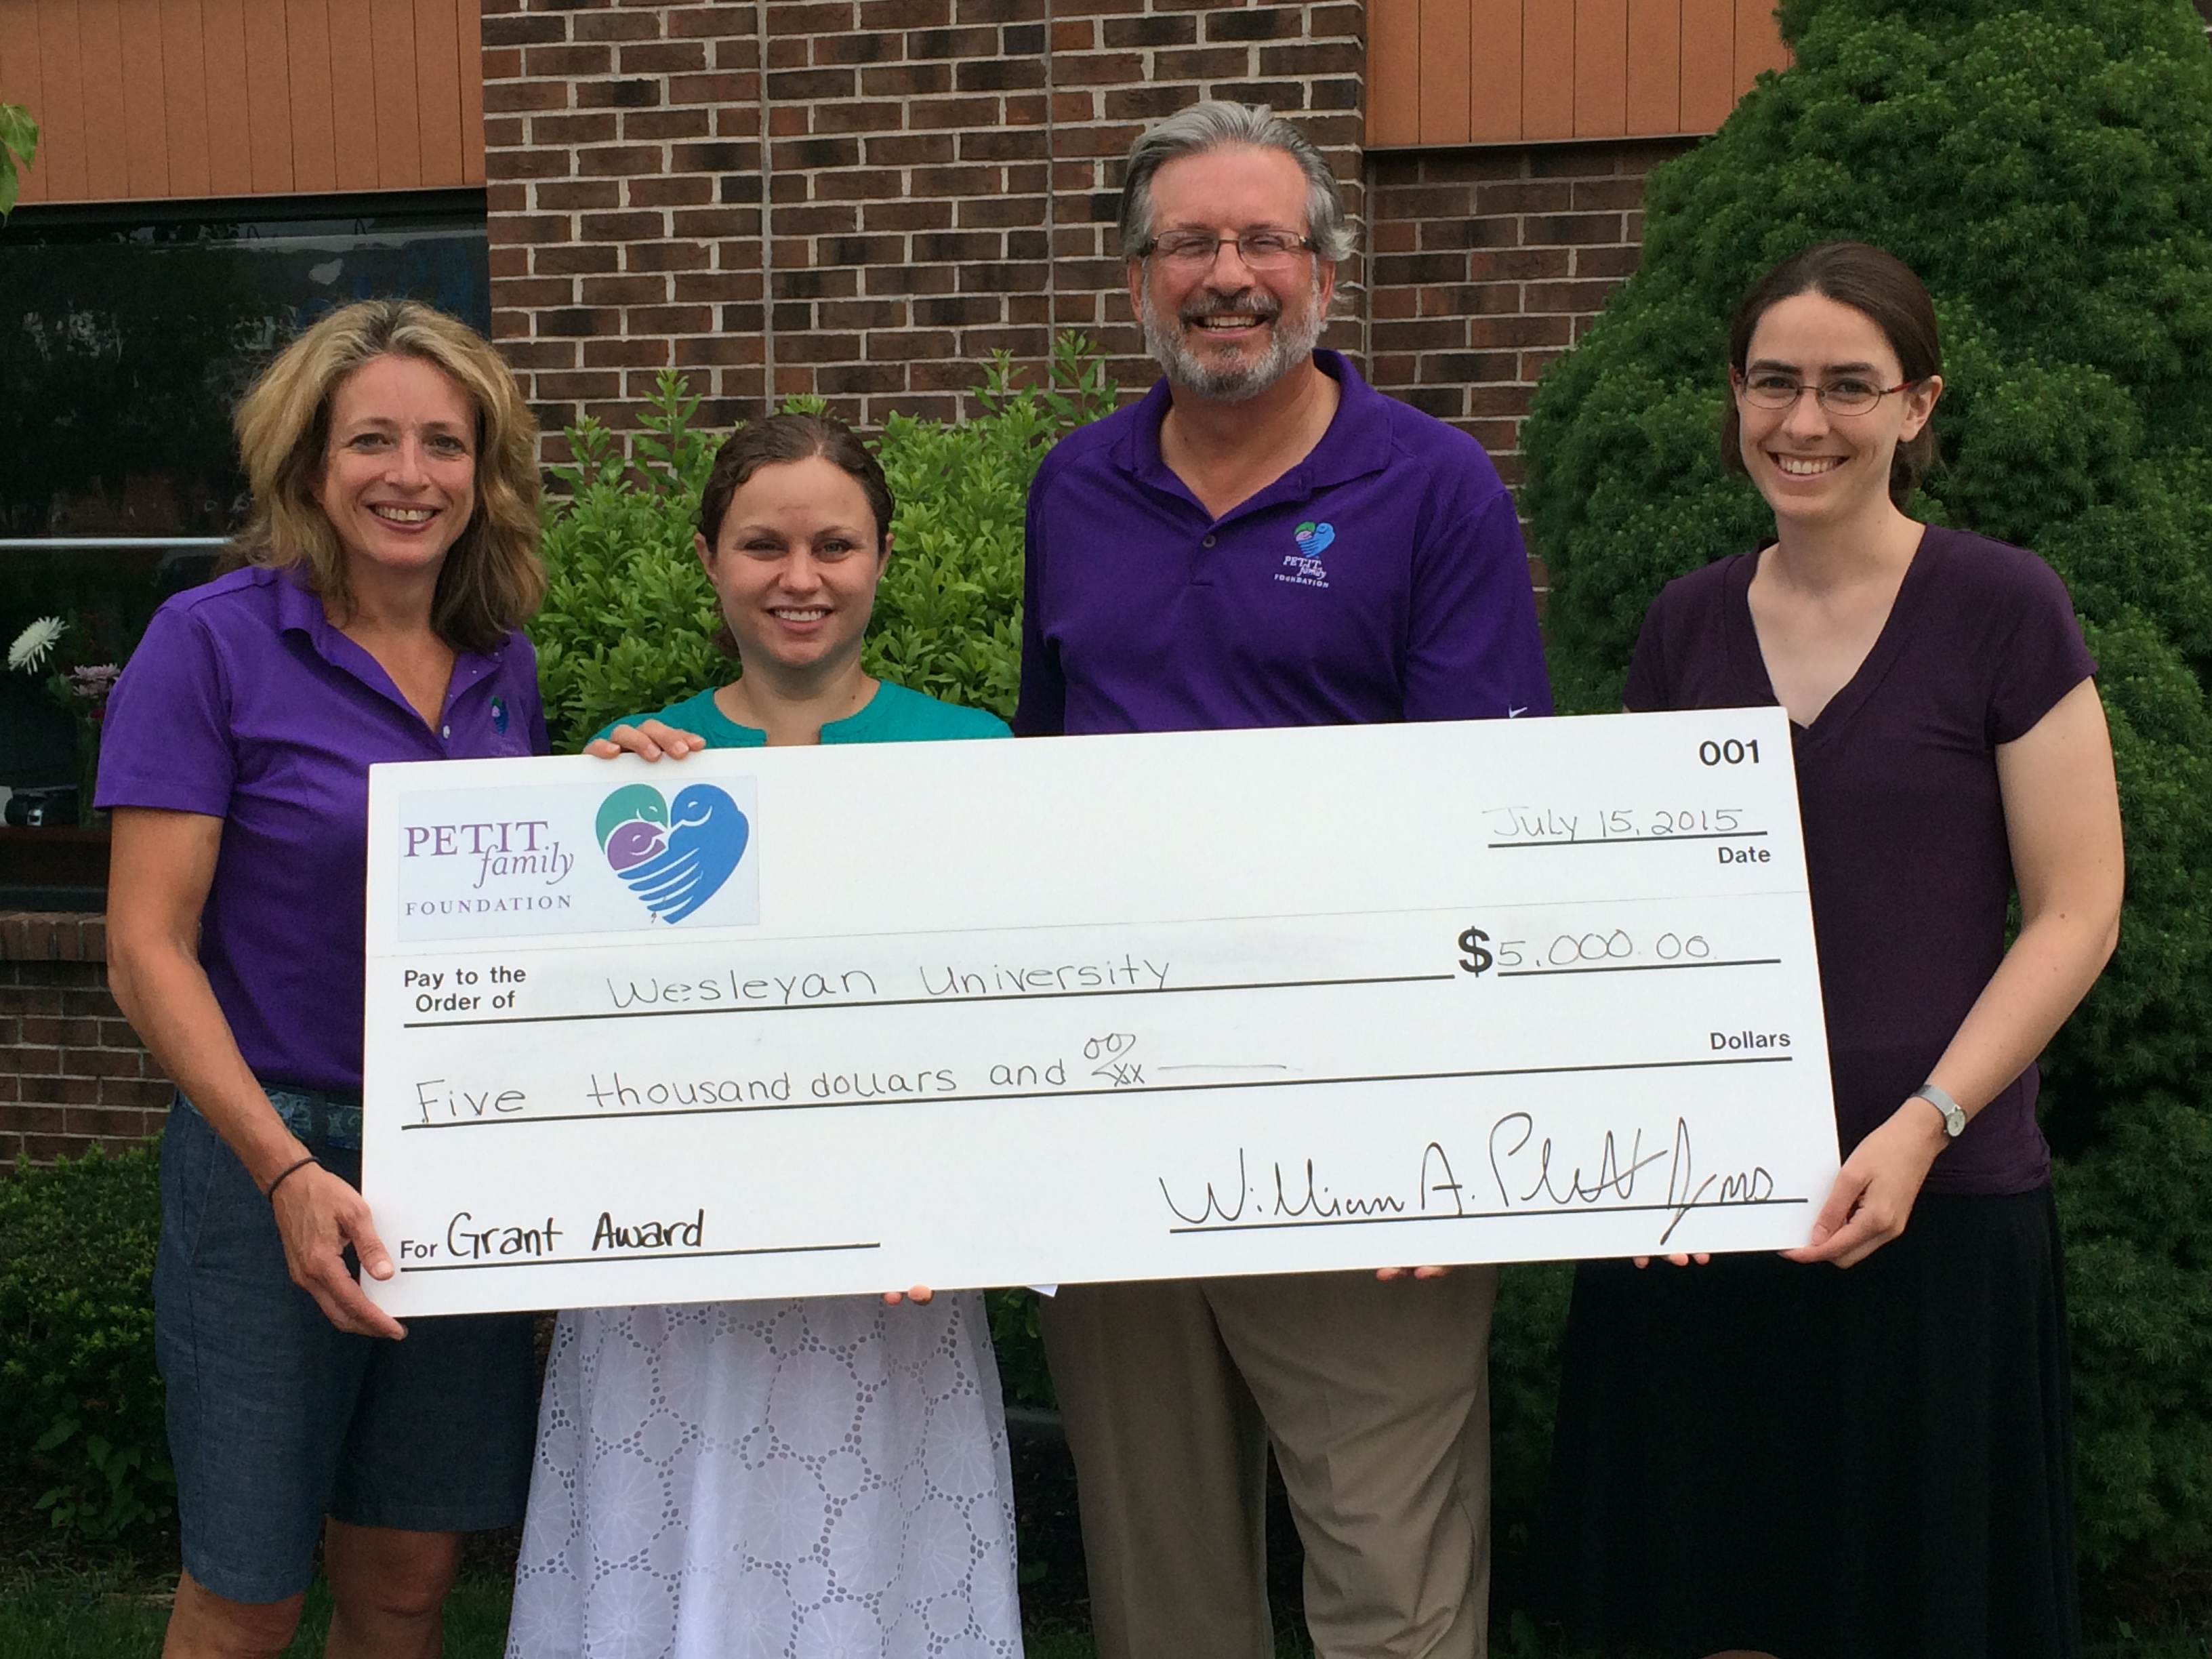 On July 15, the Petit Family Foundation awarded Wesleyan's Physics Department with a $5,000 grant to support the 2016 Northeast Conference for Undergraduate Women in Physics (CUWiP). Pictured, from left is Kimberly Petit, Chris Othon, William Petit and Meredith Hughes.